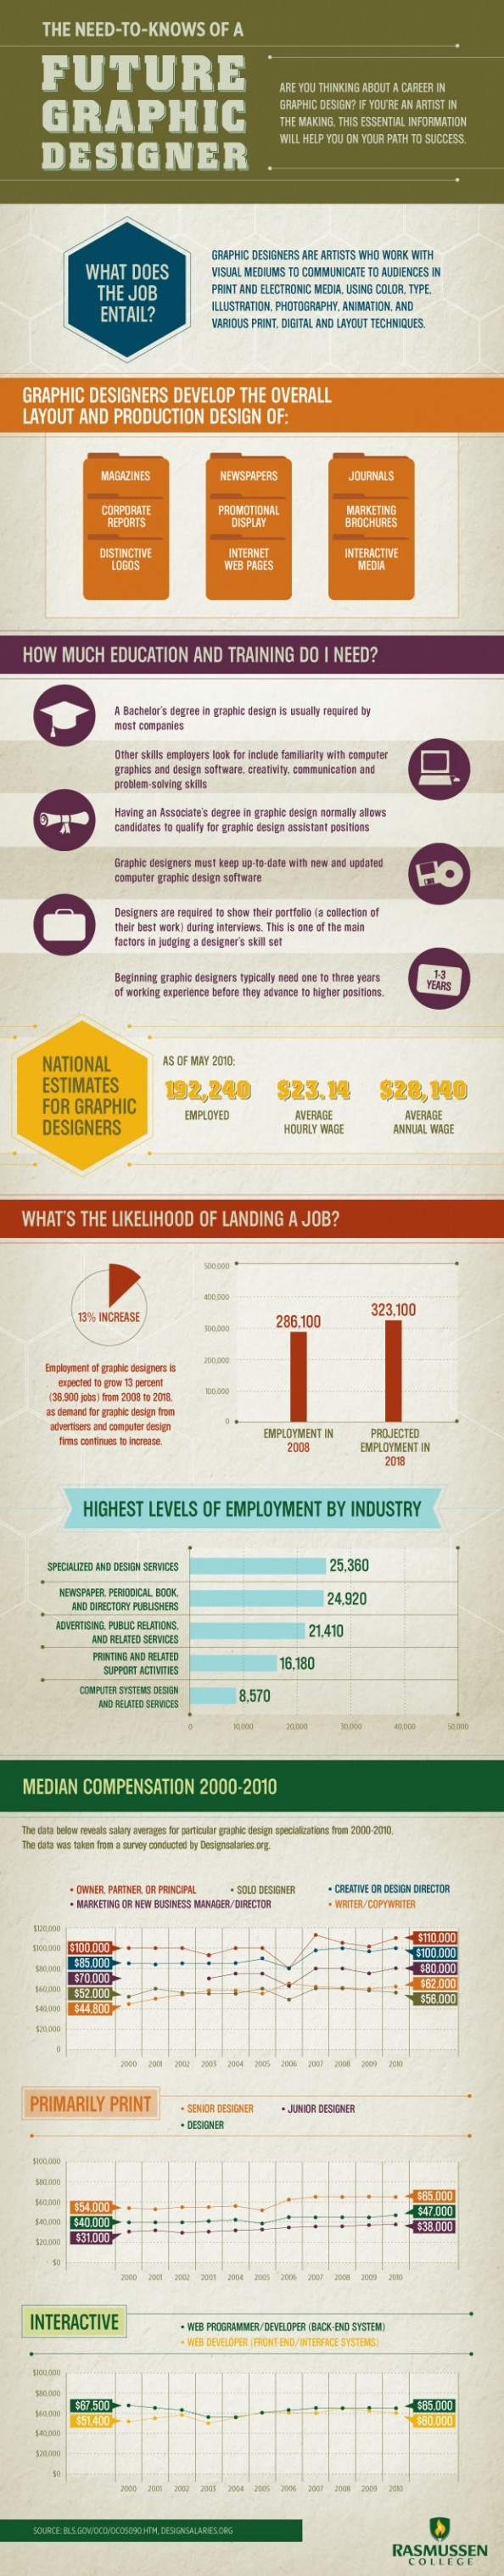 Are you thinking of a career in graphic design? Here's some basic information to help you out!